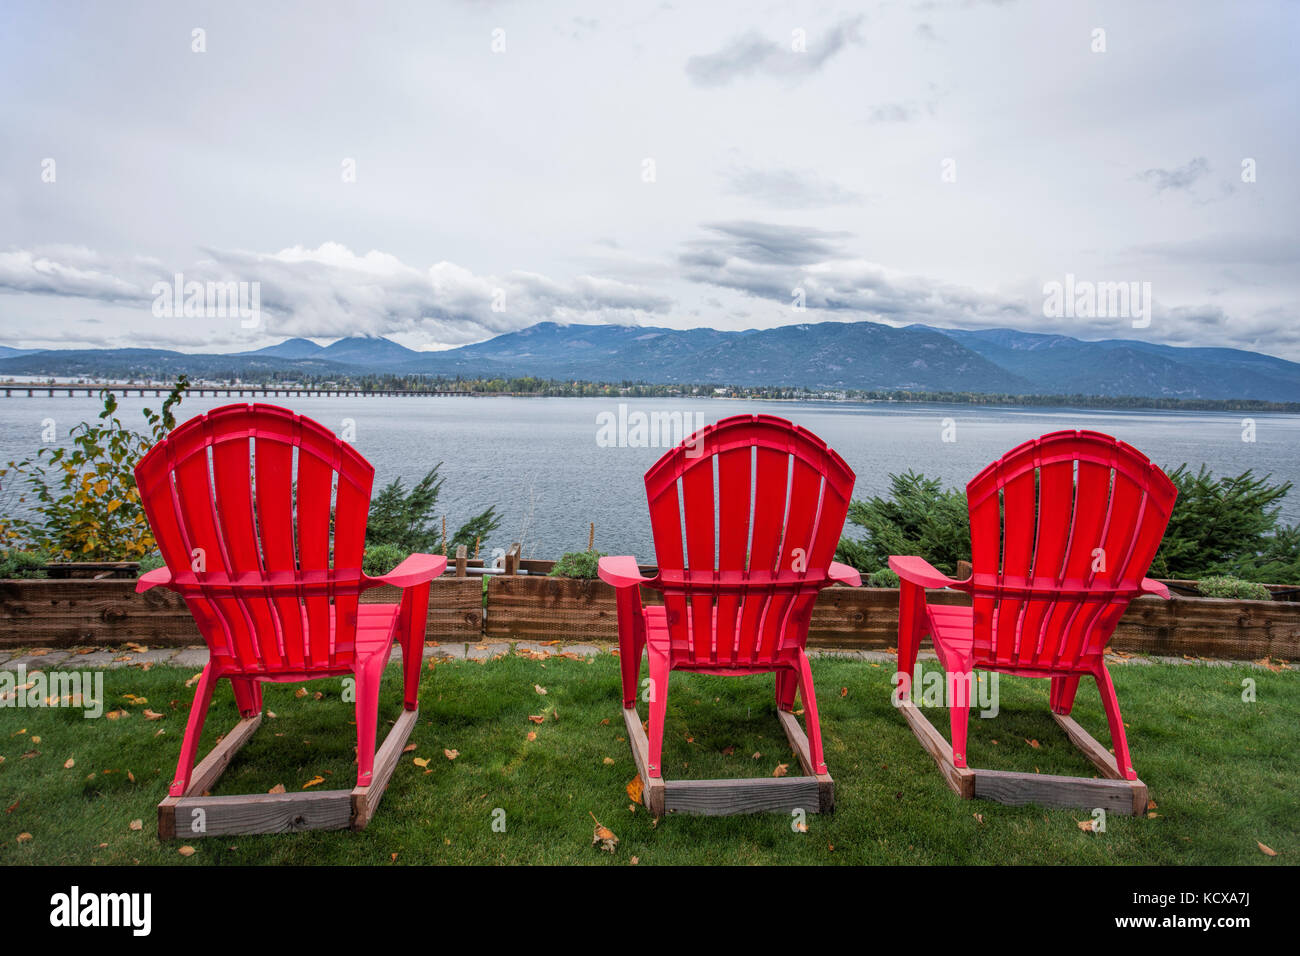 Three red lawn chairs sit in the yard overlooking the lake by Sandpoint, Idaho. - Stock Image